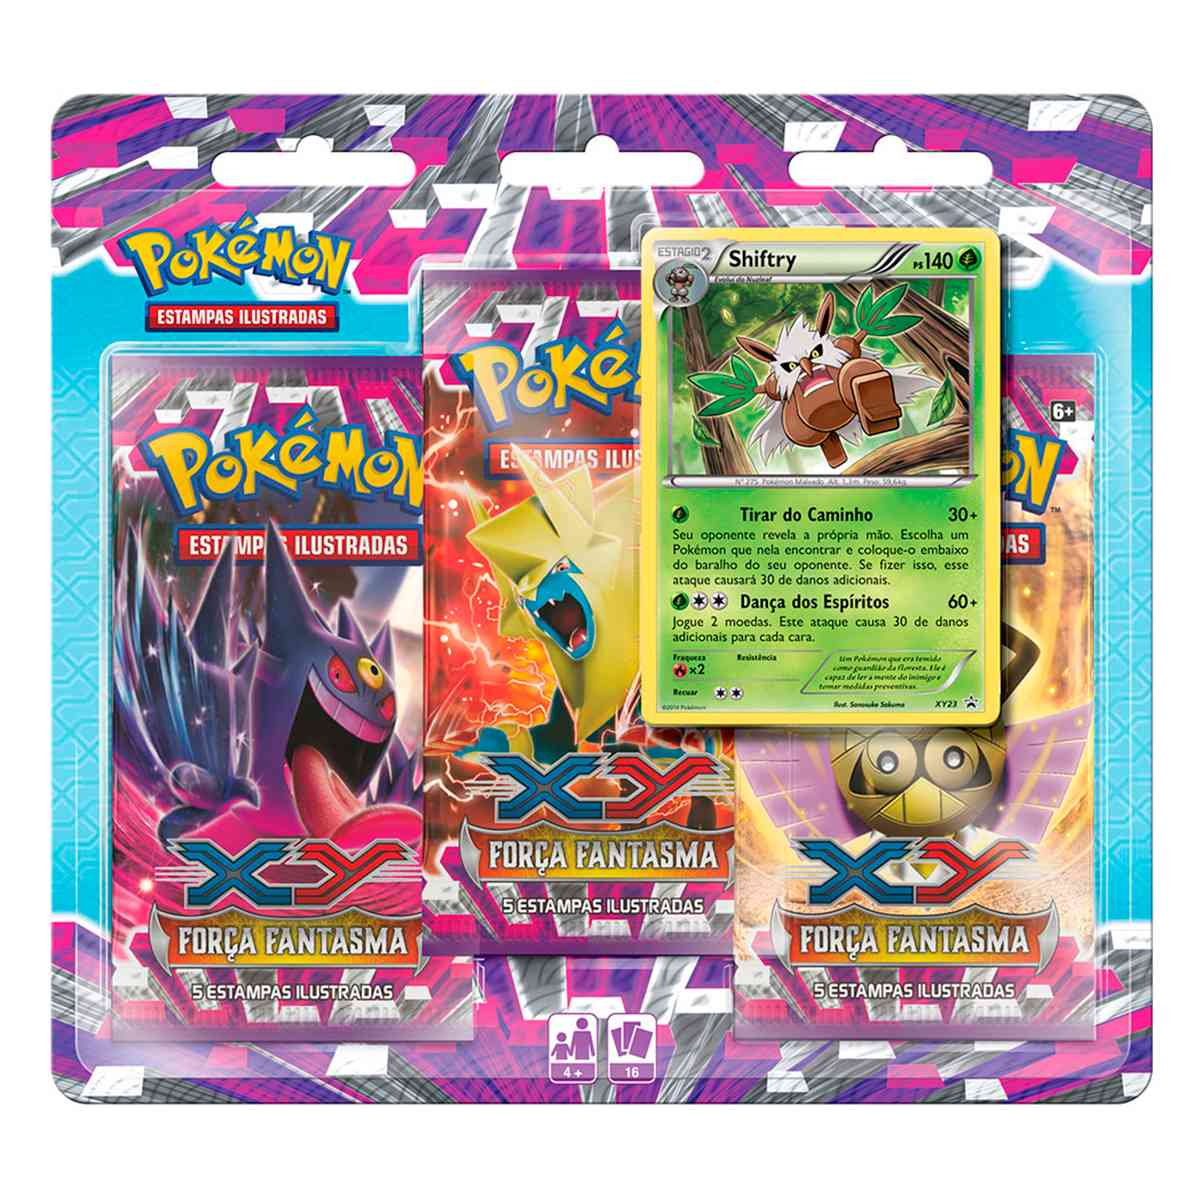 Pokémon Triple Pack Shiftray XY 4 Força Fantasma